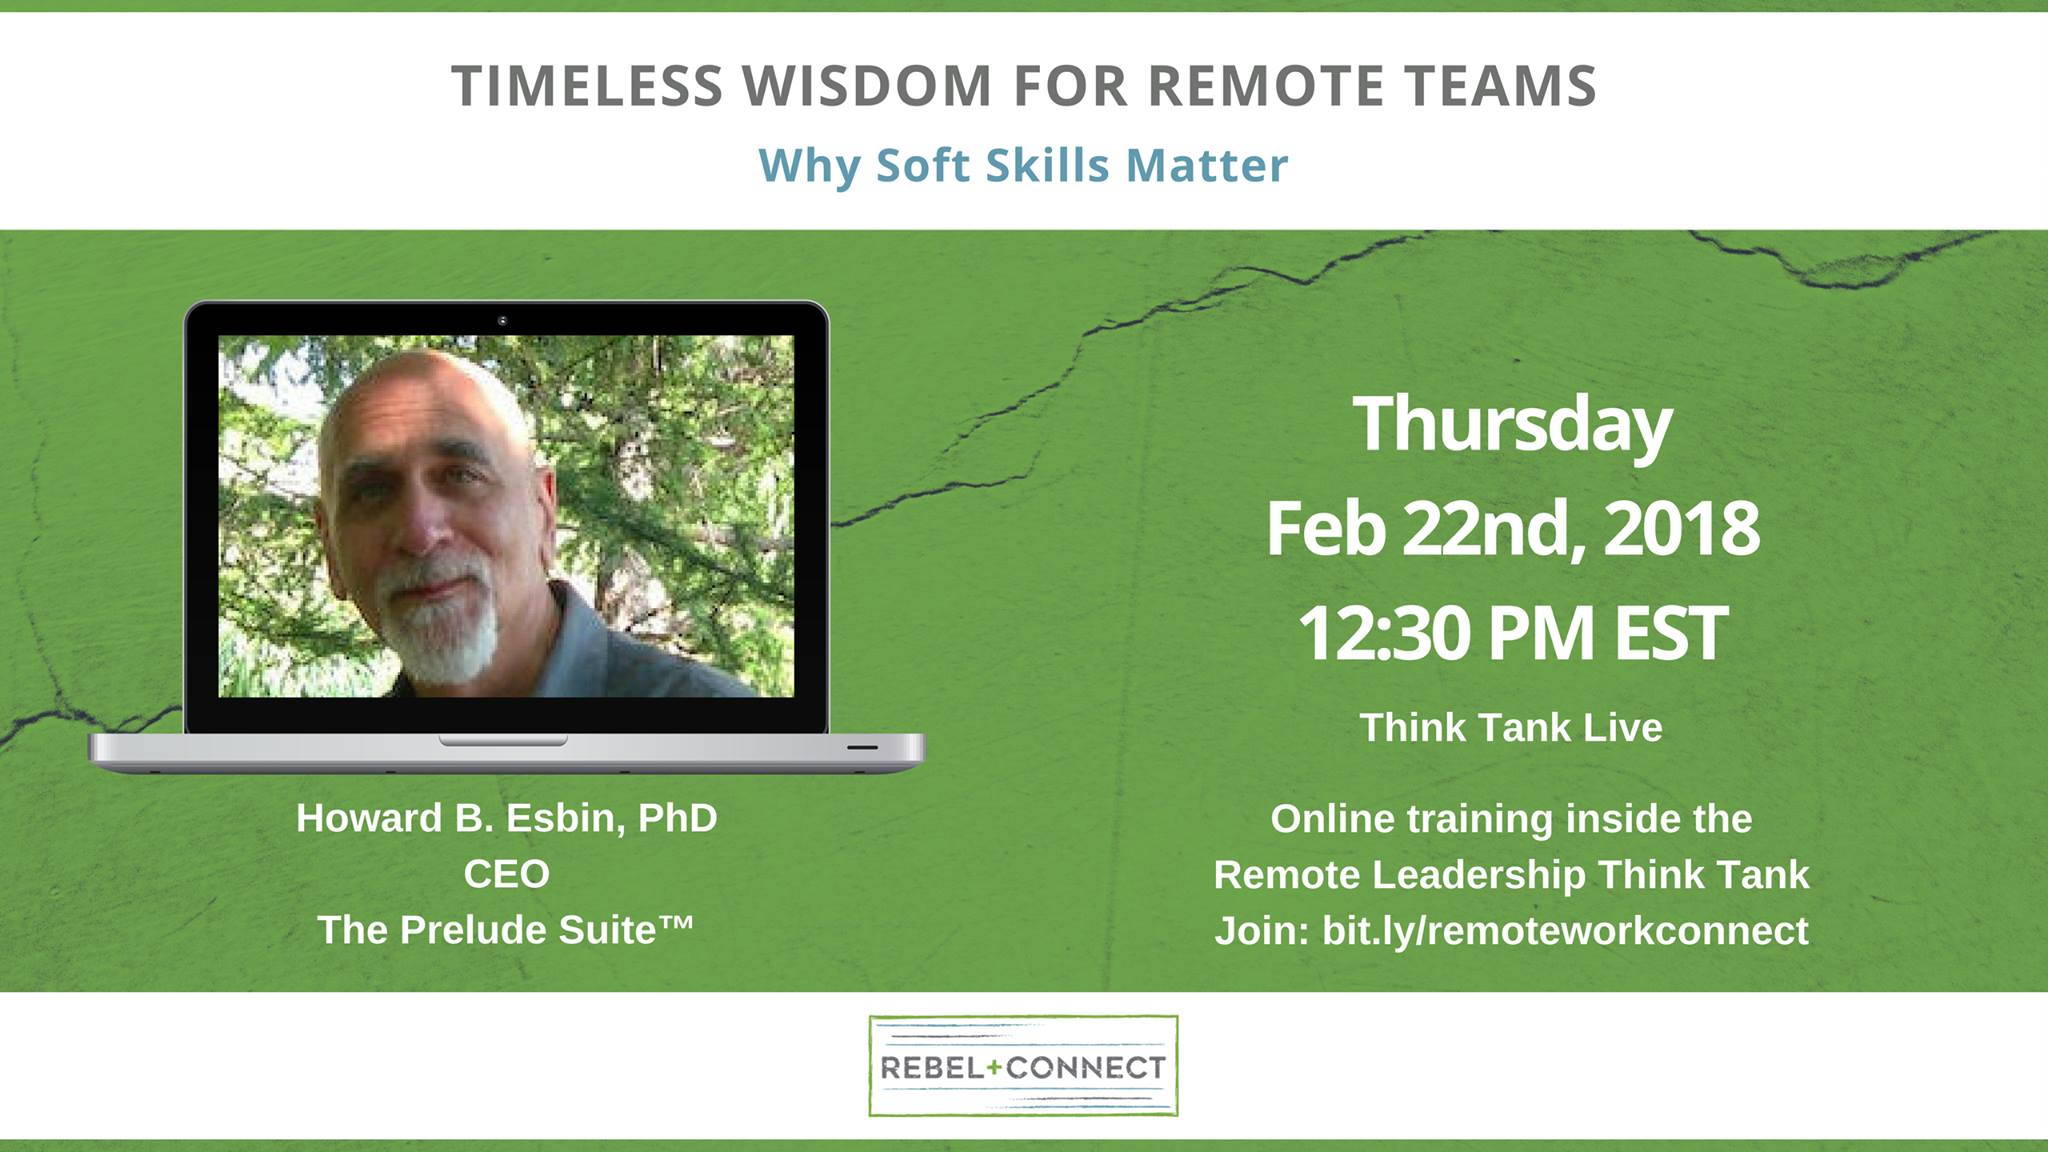 Master remote team soft skills for virtual team success.